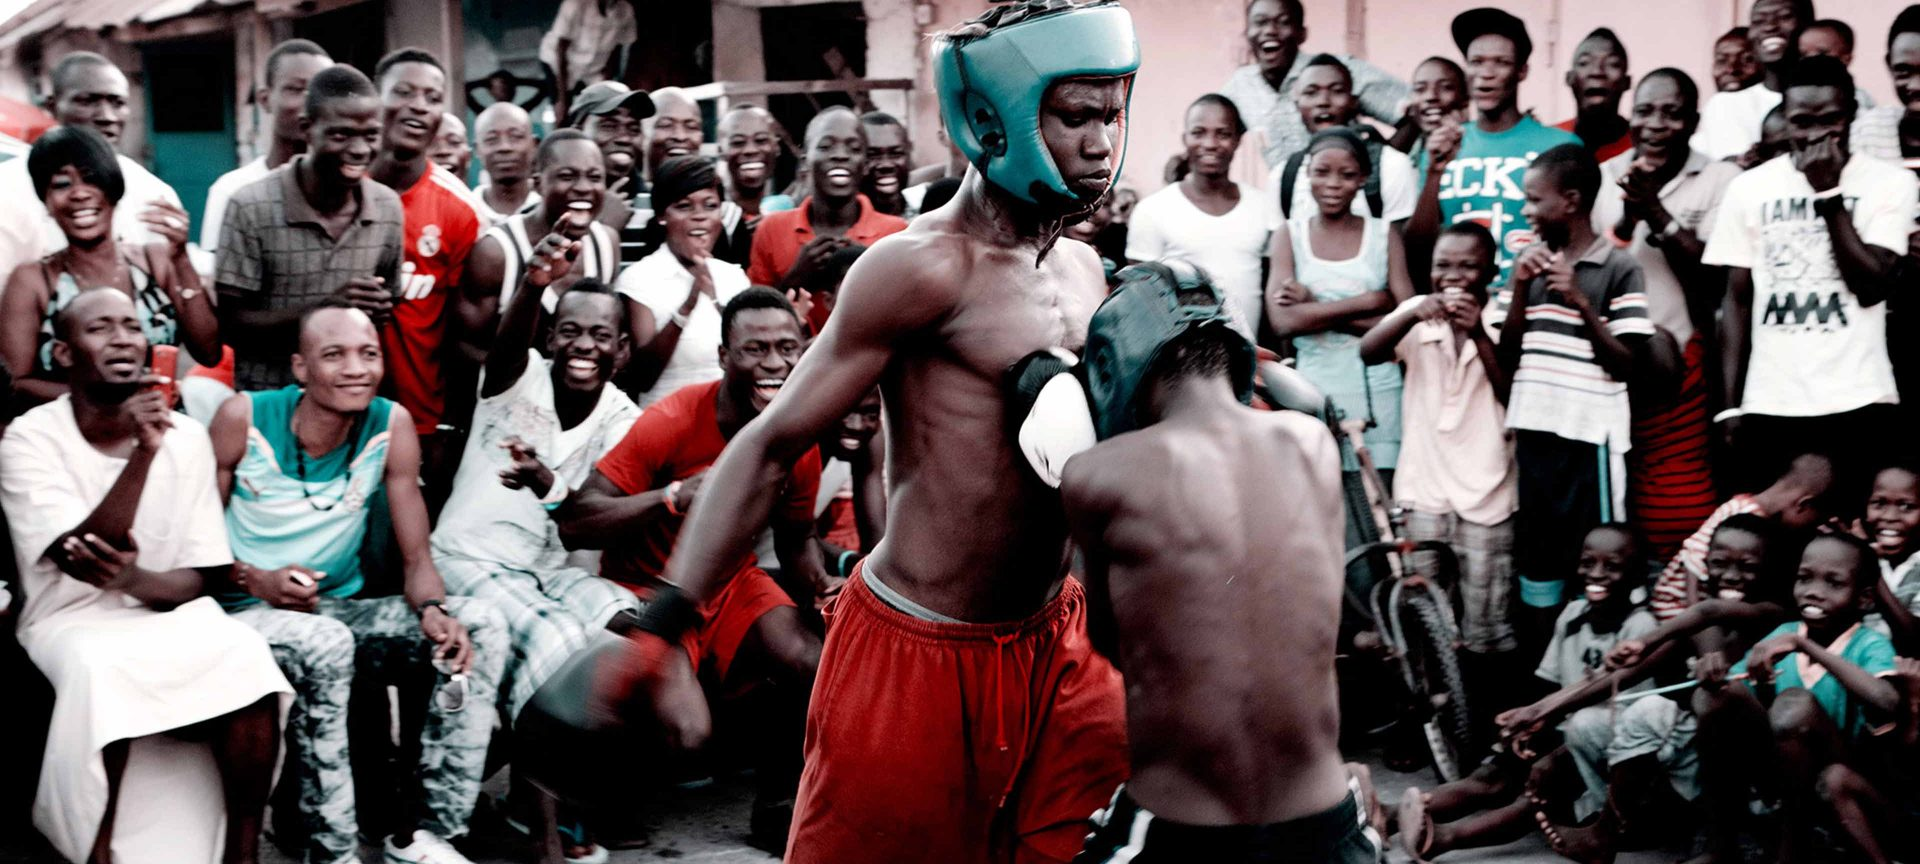 Two young Bukom boxers spar in a ring, cheered on by a crowd